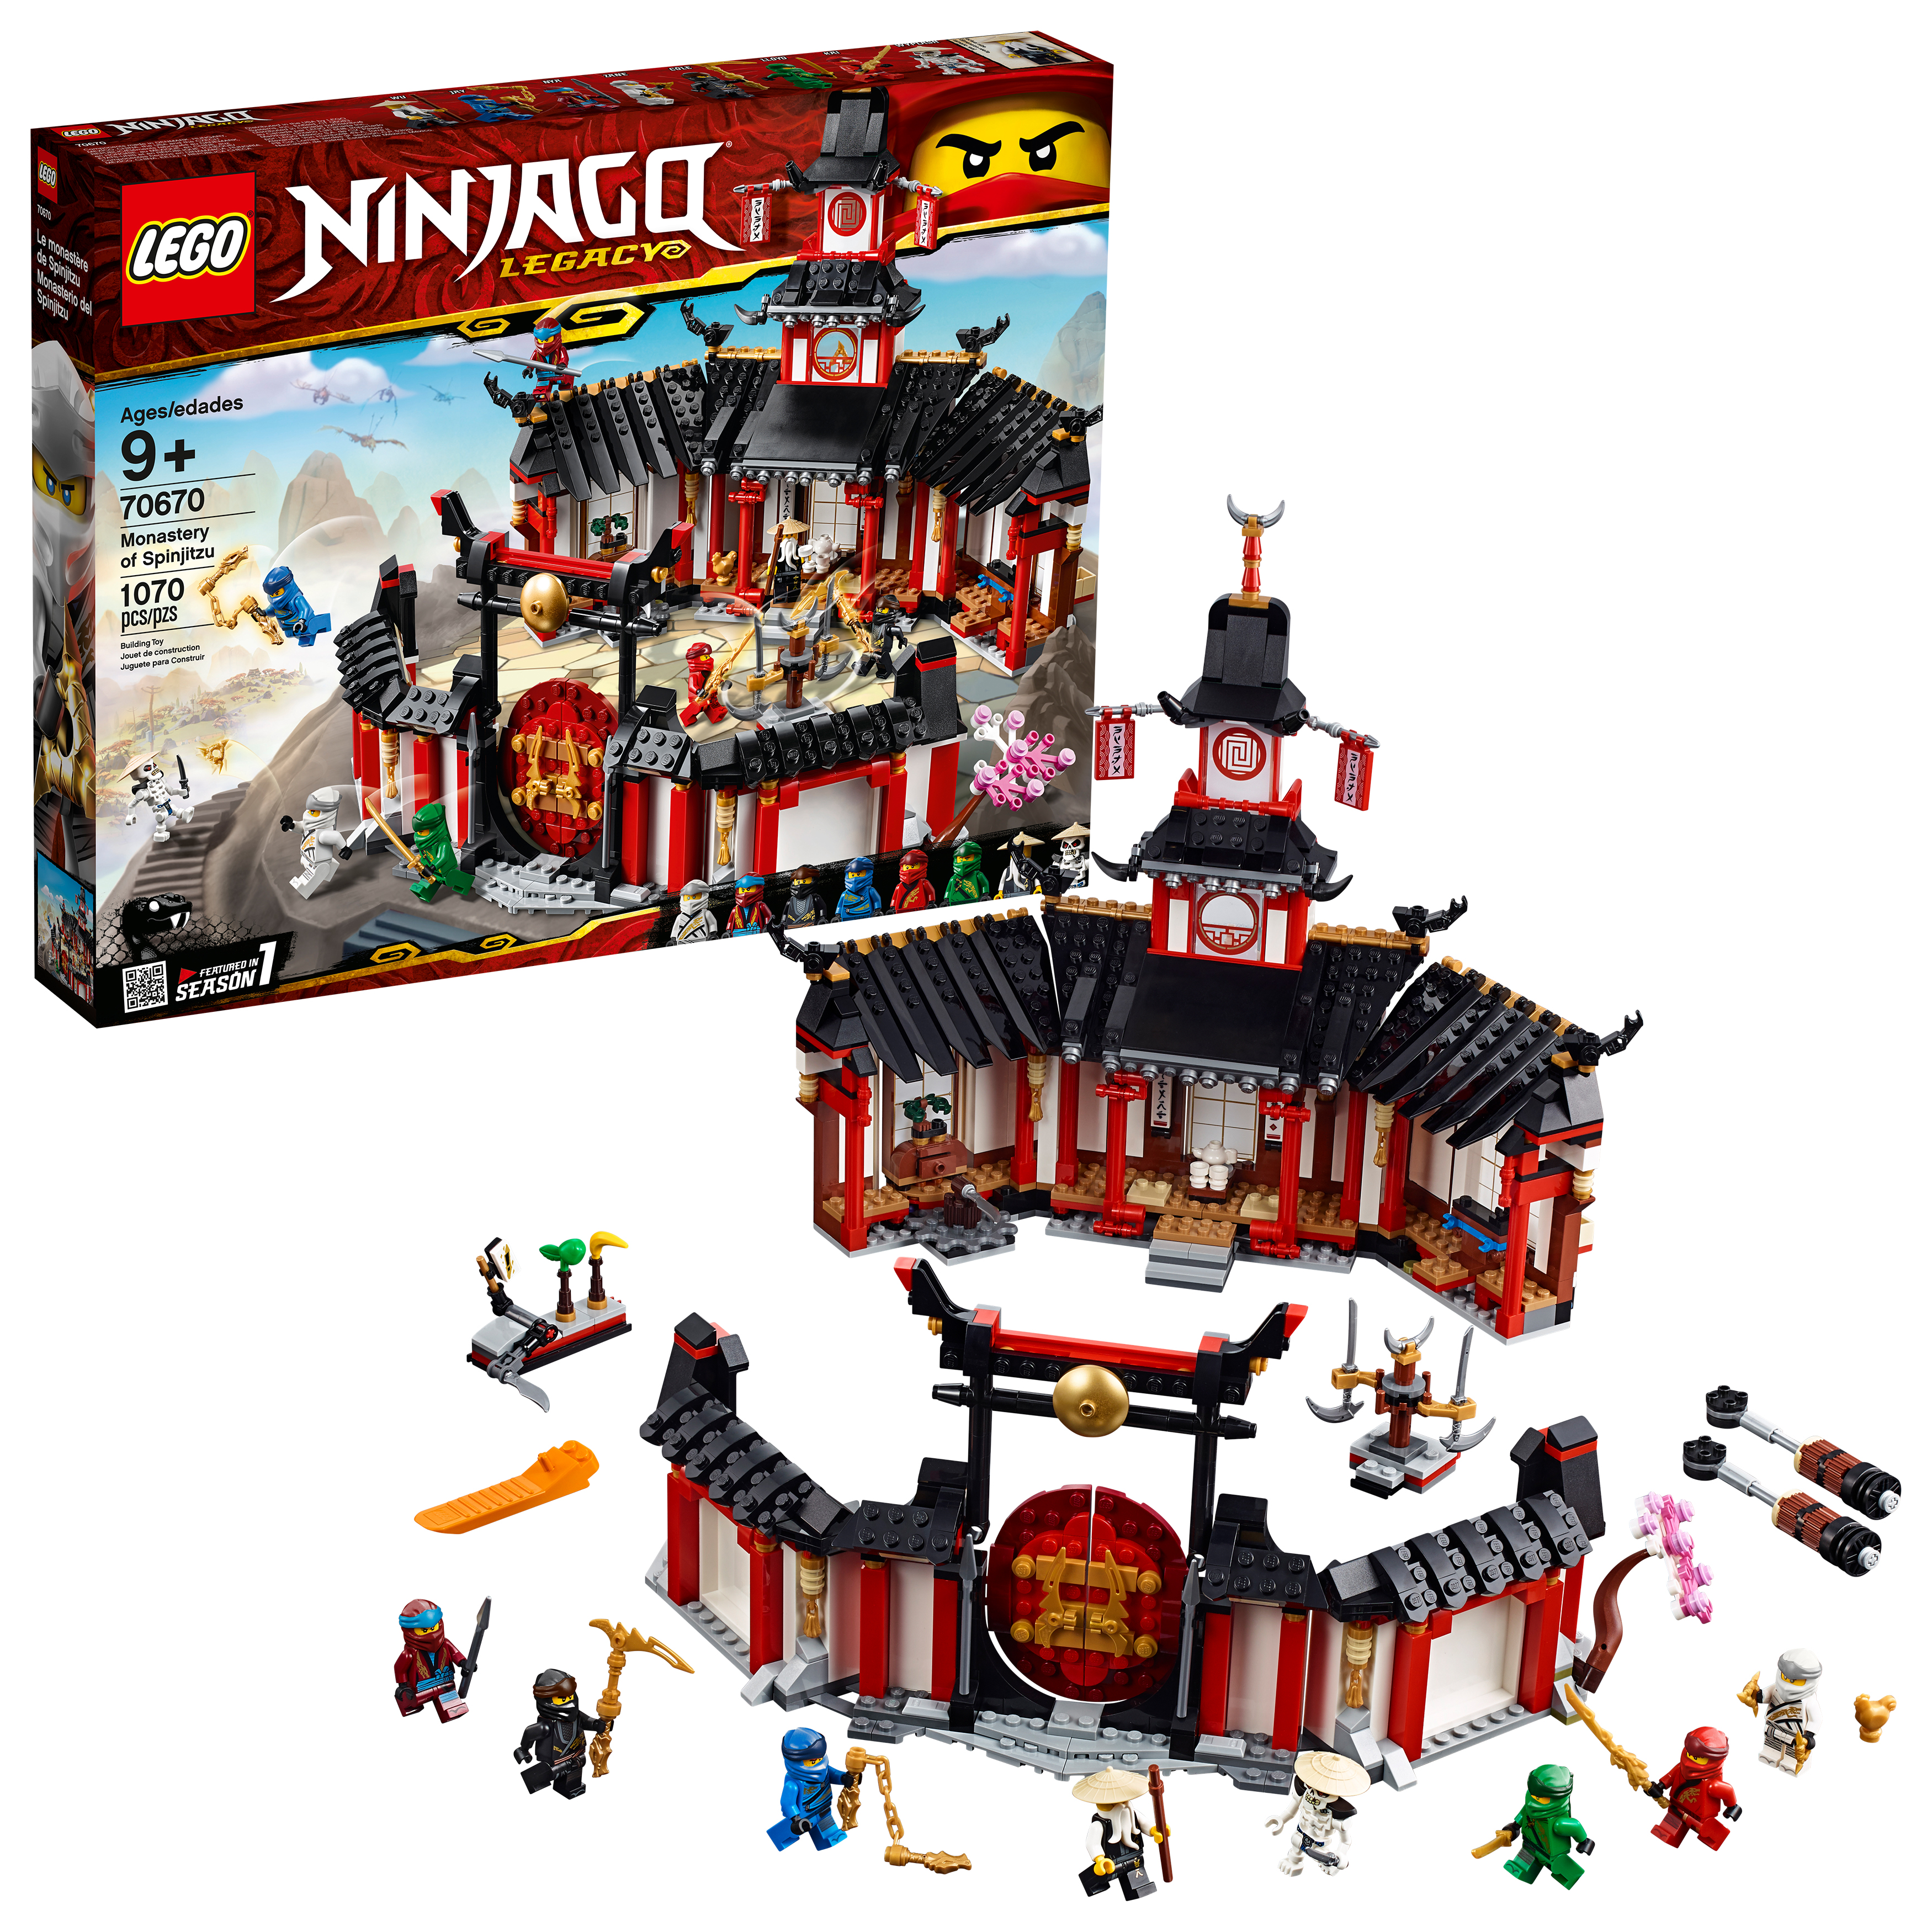 LEGO Ninjago Monastery of Spinjitzu 70670 Building Set